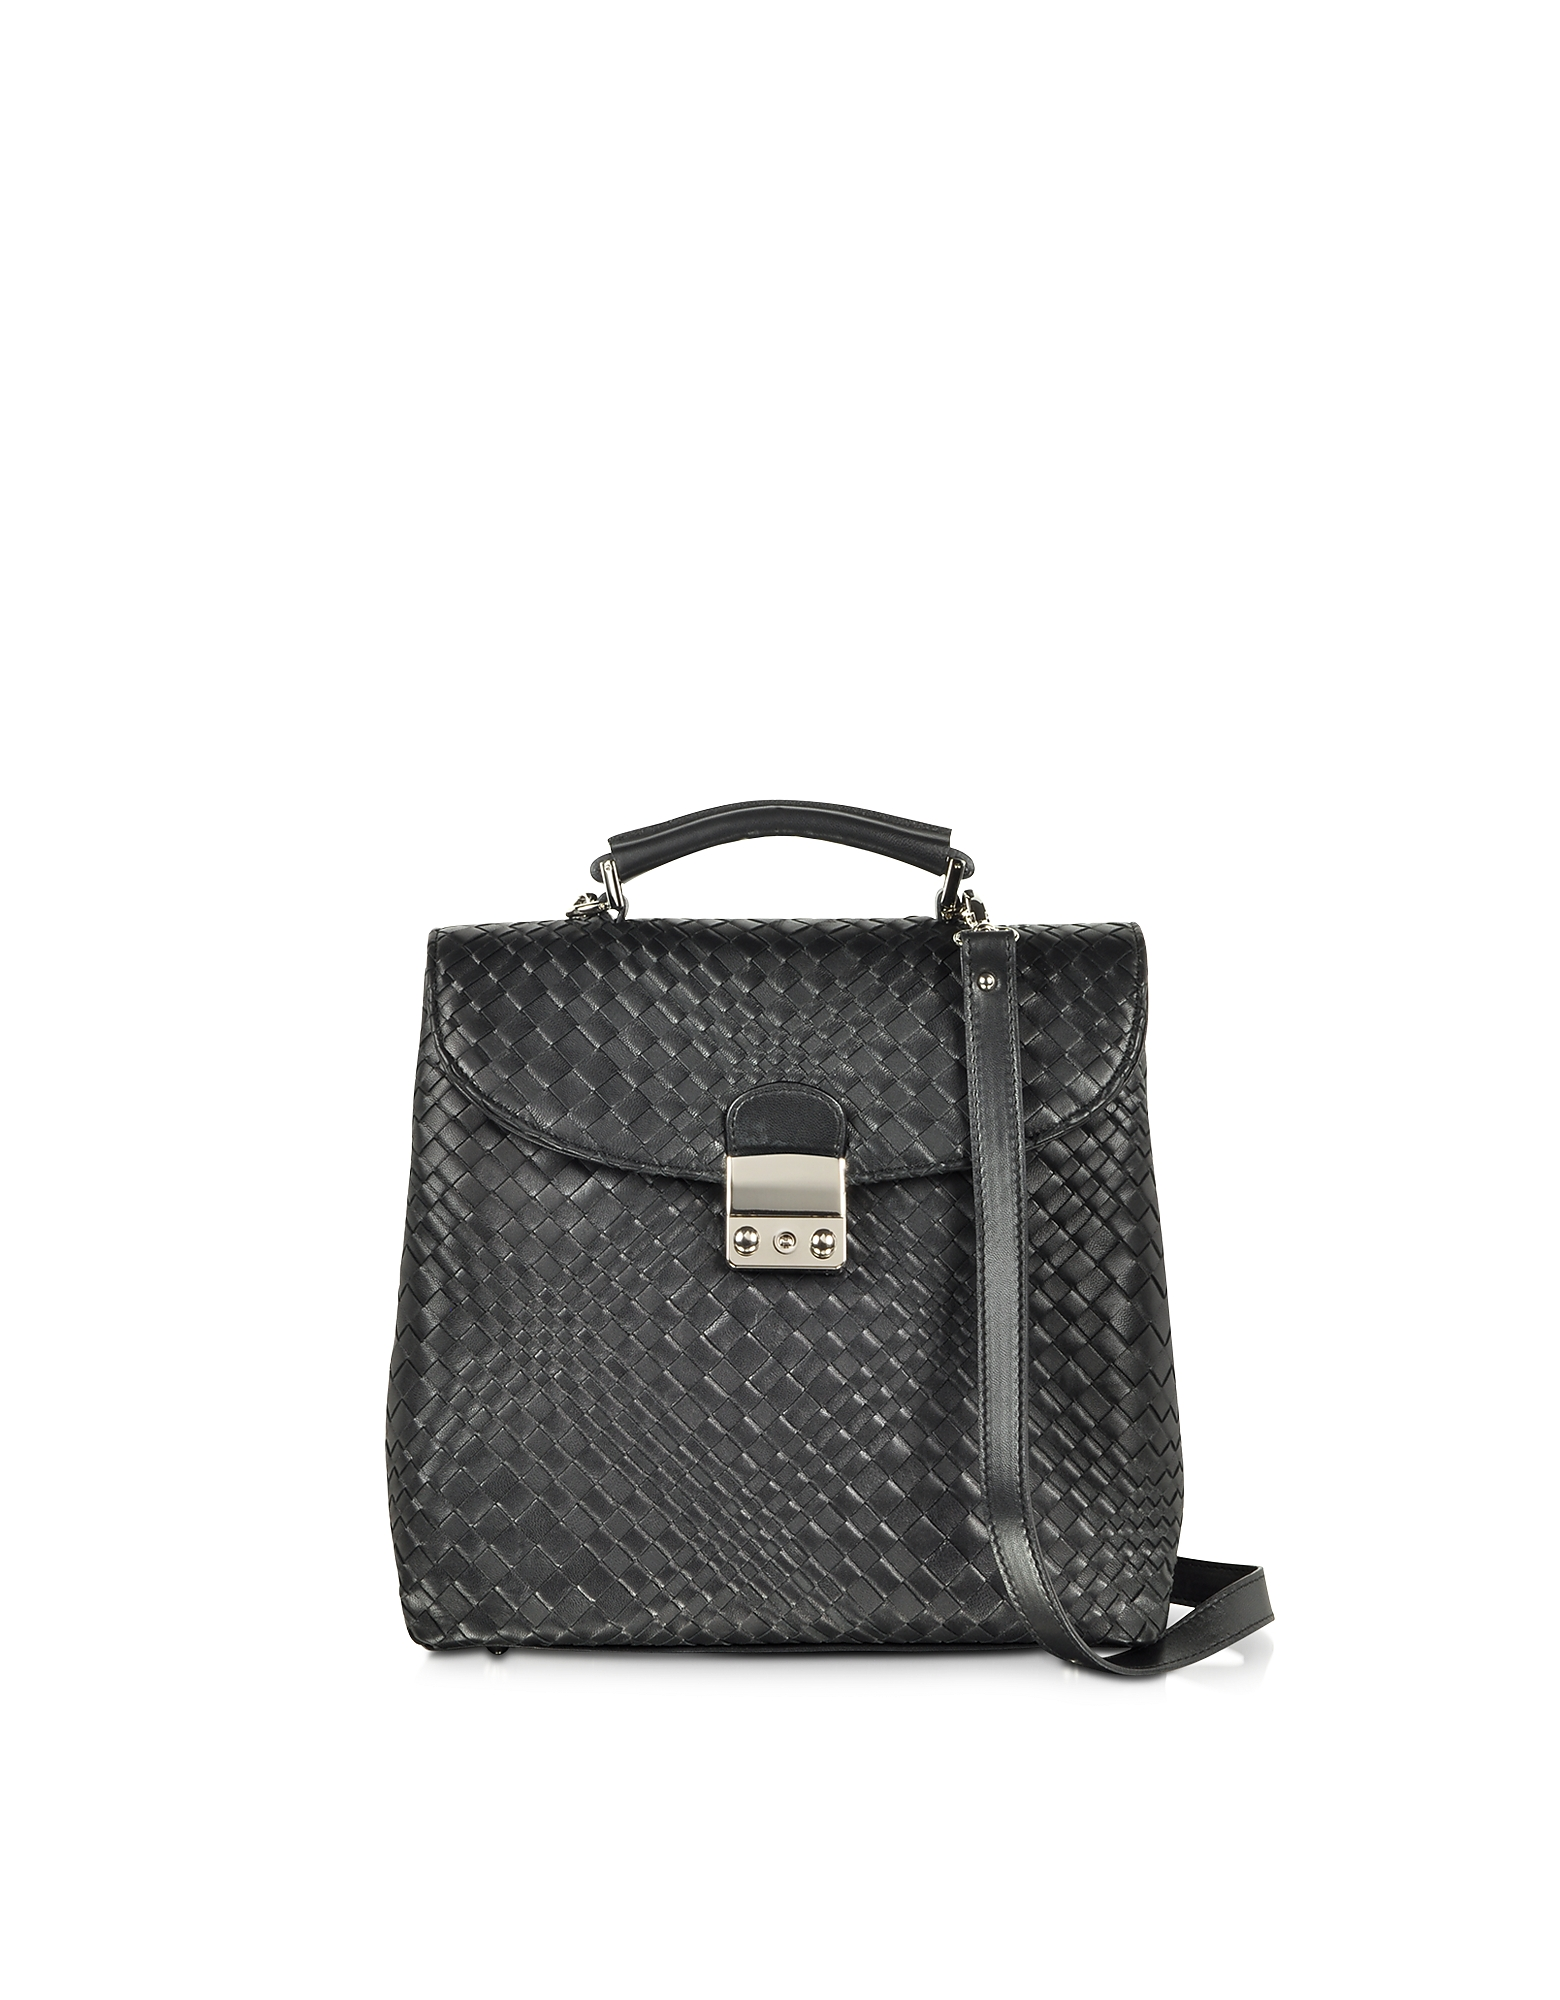 Forzieri Briefcases, Black Woven Leather Vertical Messenger